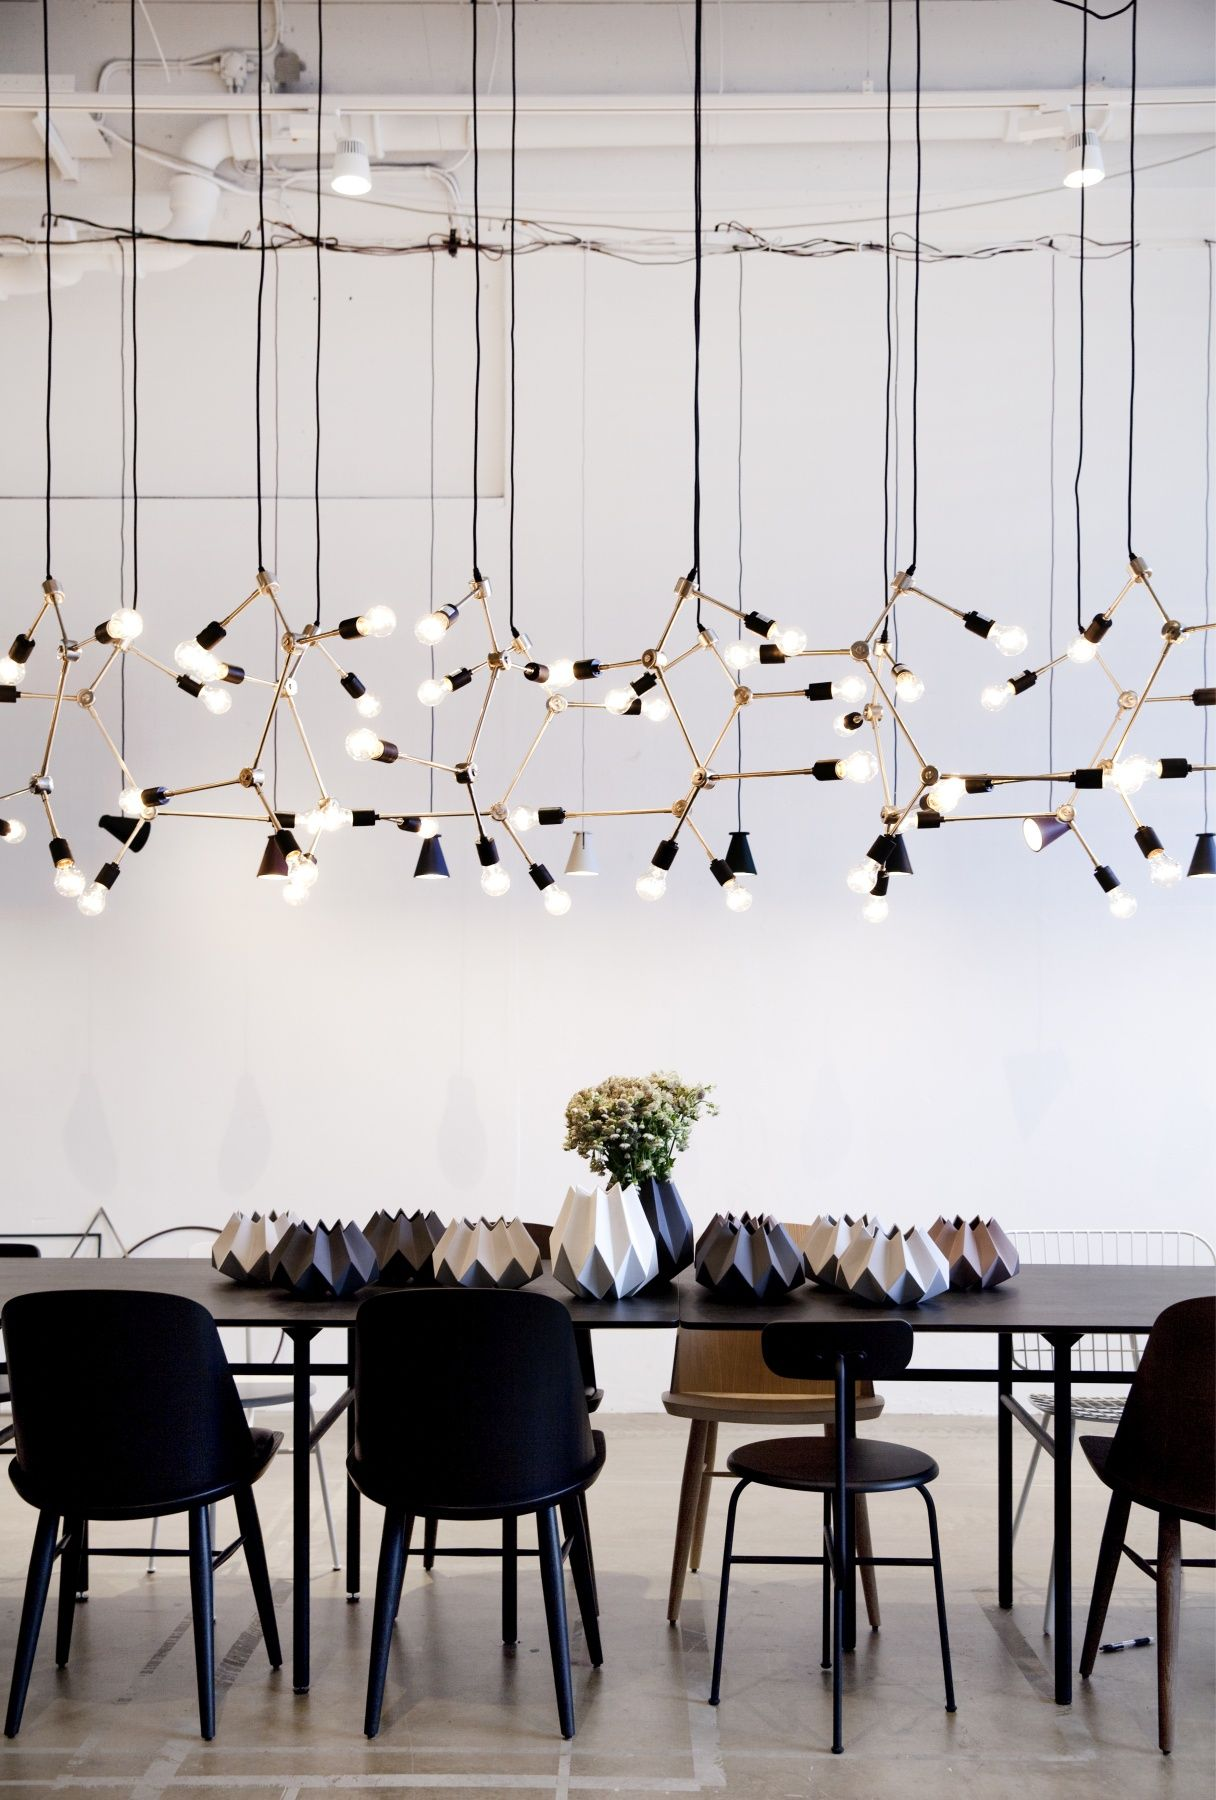 Dinner Table Lighting Ideas Modern Lighting Installation With Black Table And Chairs